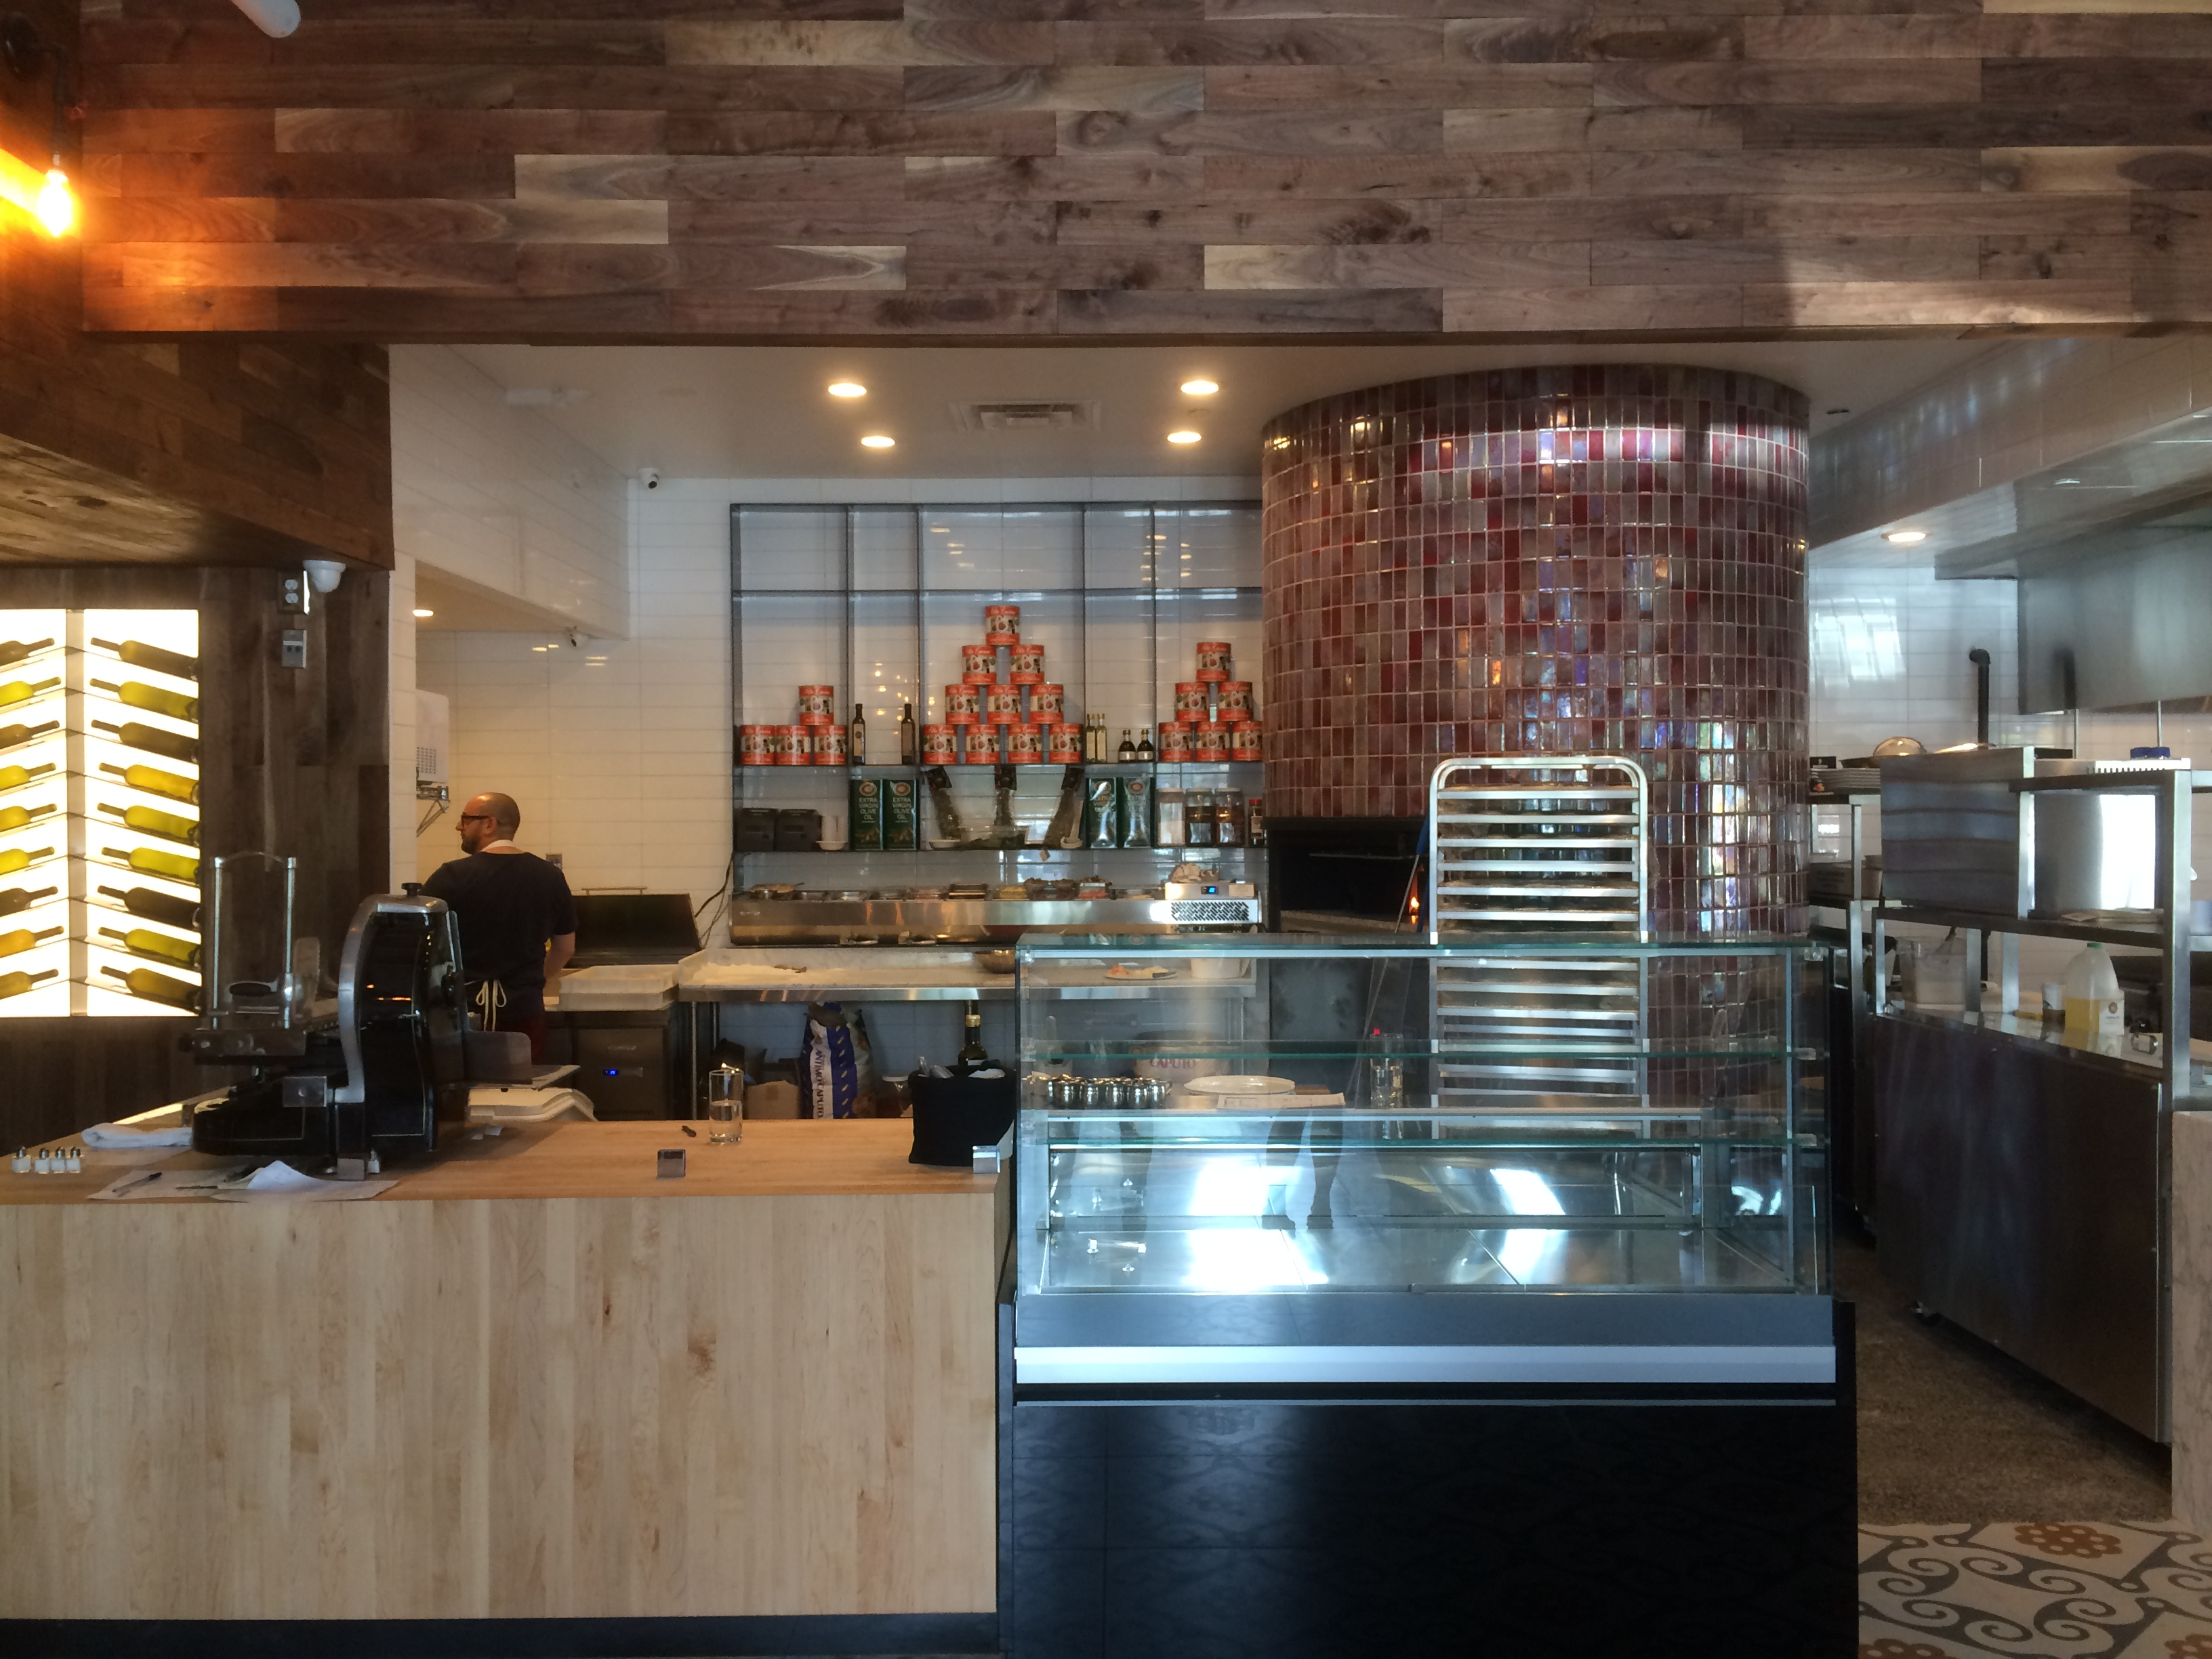 Kitchen Connection Reviews Novo Cucina Is Now Open The Aha Connection